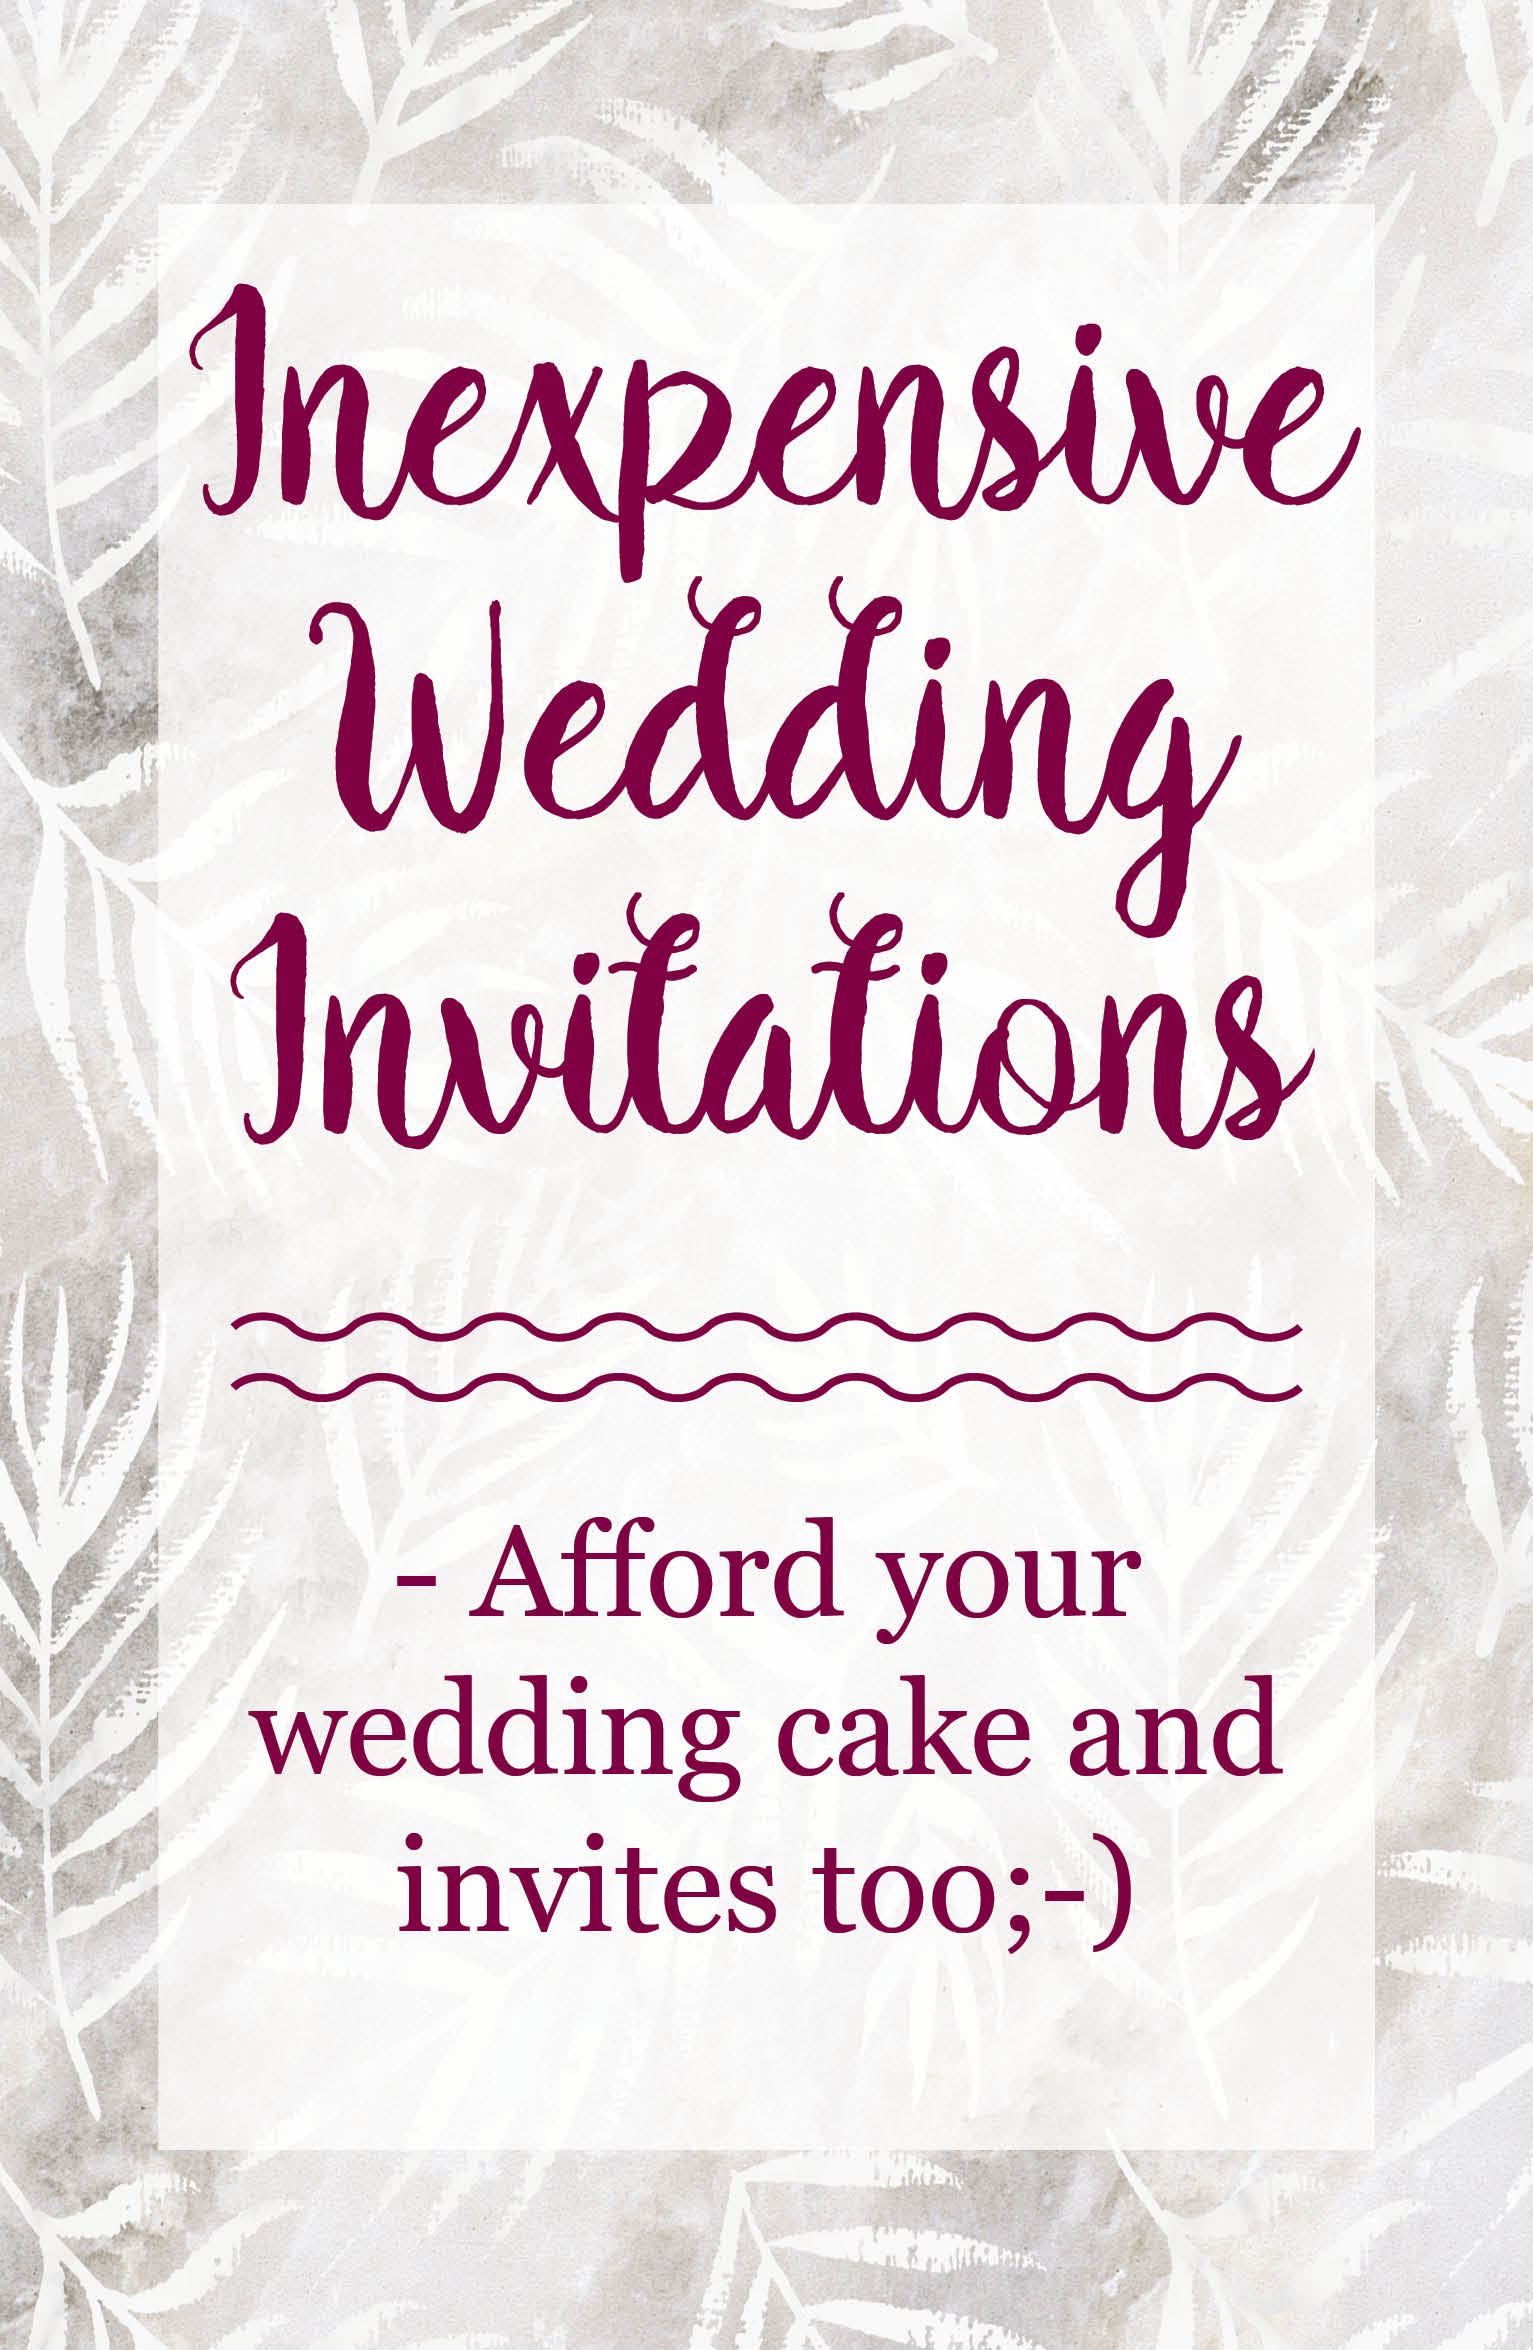 Inexpensive Wedding Invitations - Have the best and stay on budget!